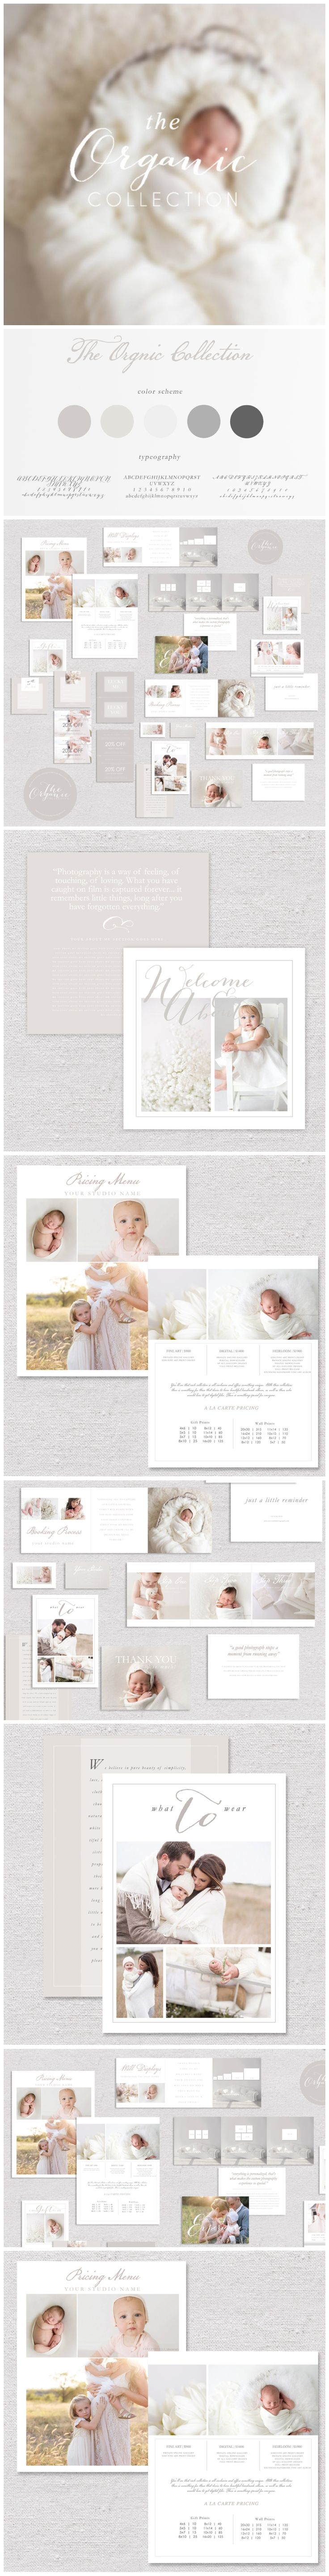 CLIENT WELCOME PACKET & MARKETING SET FOR PROFESSIONAL PHOTOGRAPHERS   THE ORGANIC COLLECTION  On Sale!!!!  Modern Market